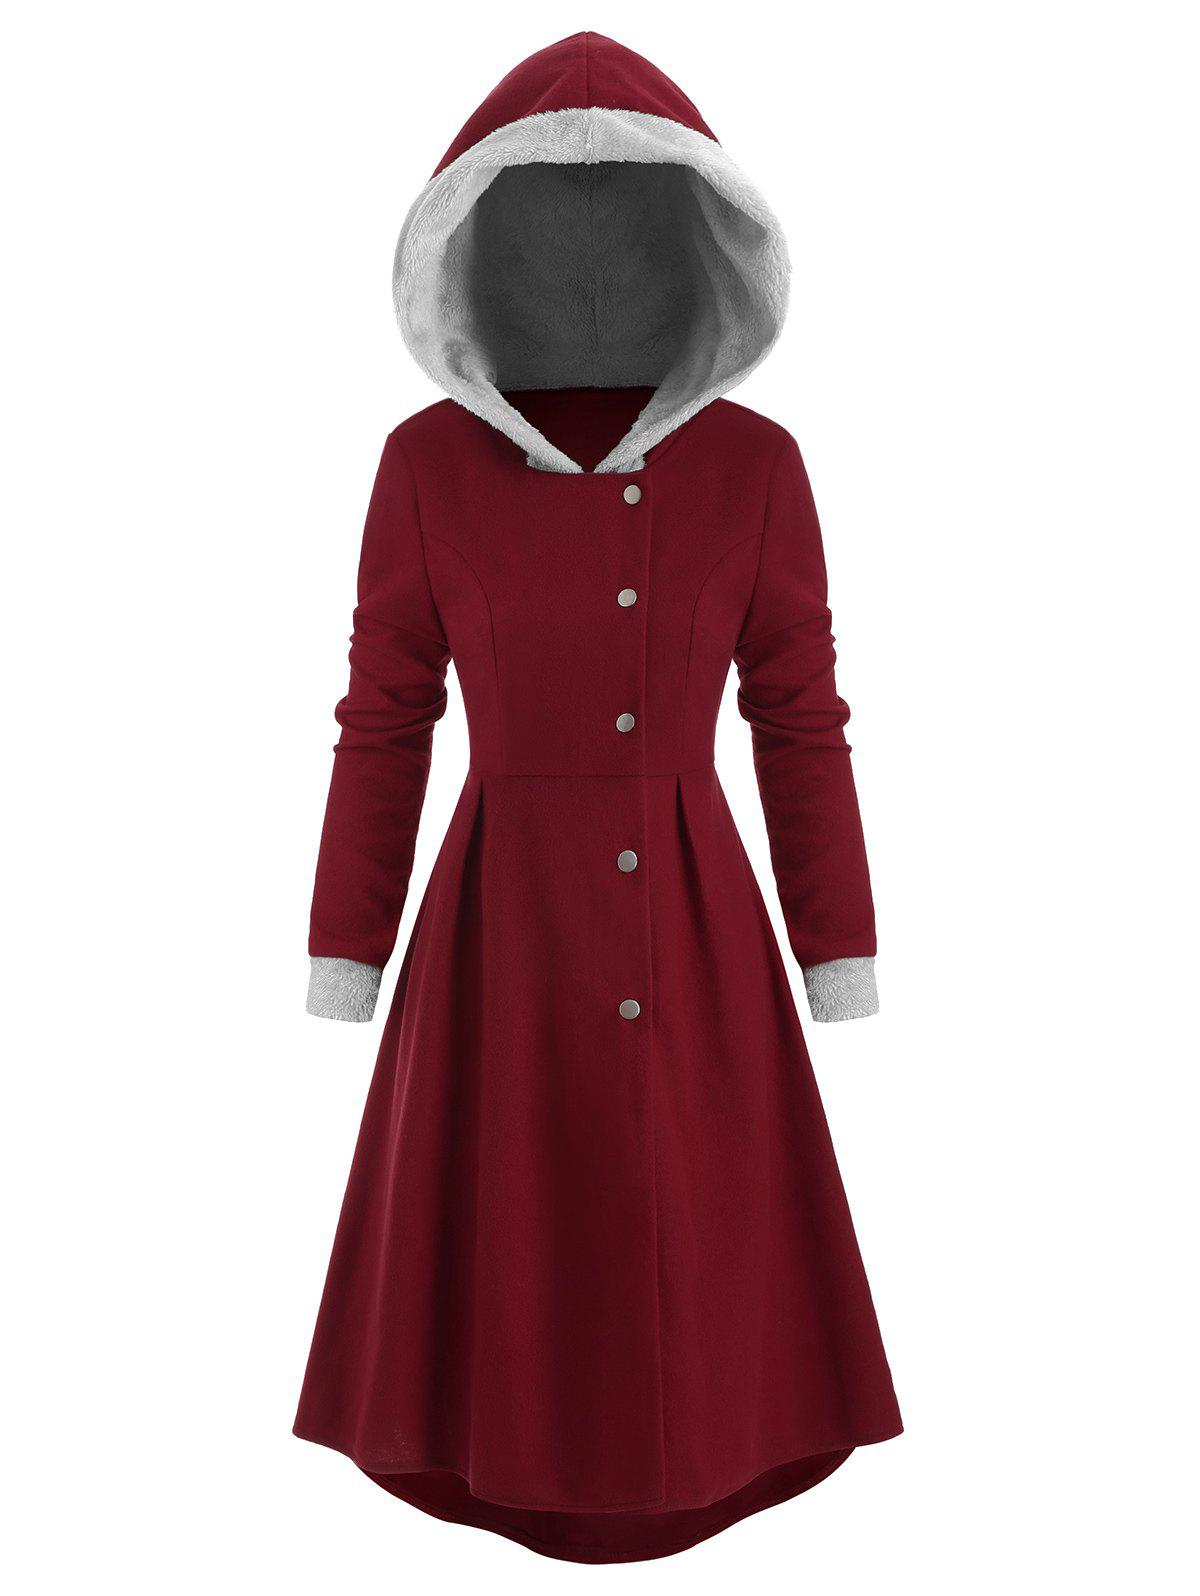 Snap Button Fur Trim Skirted Hooded Coat - RED WINE L